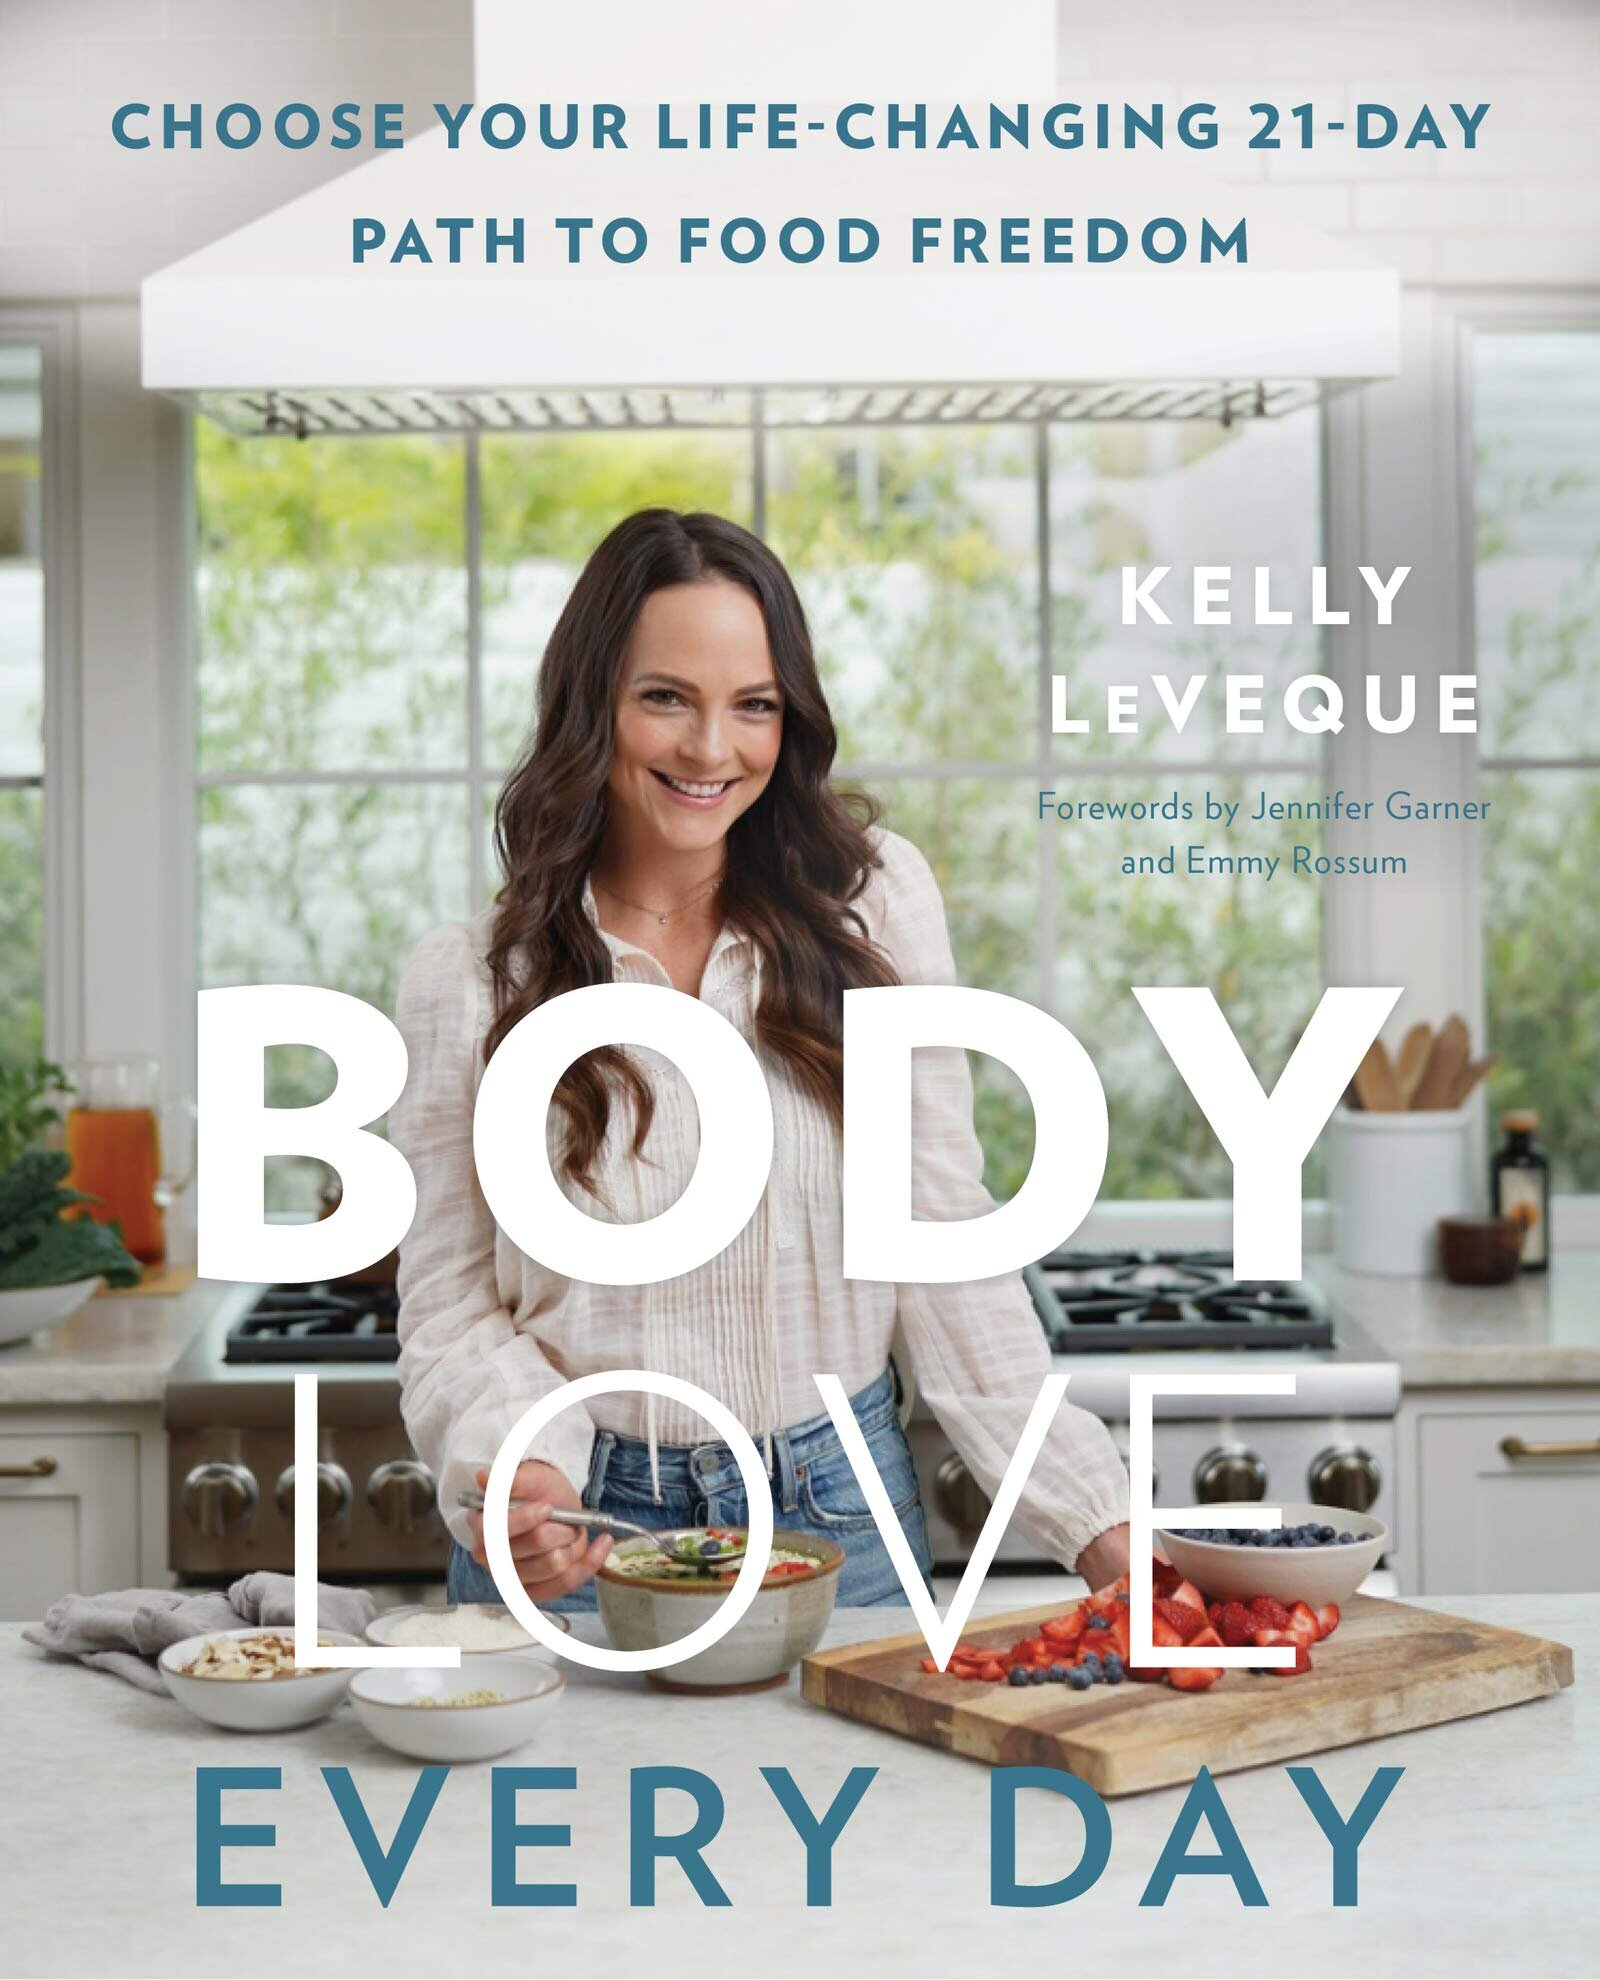 body-love-everyday-by-kelly-leveque-foreword-by-jennifer-garner-emmy-rossum